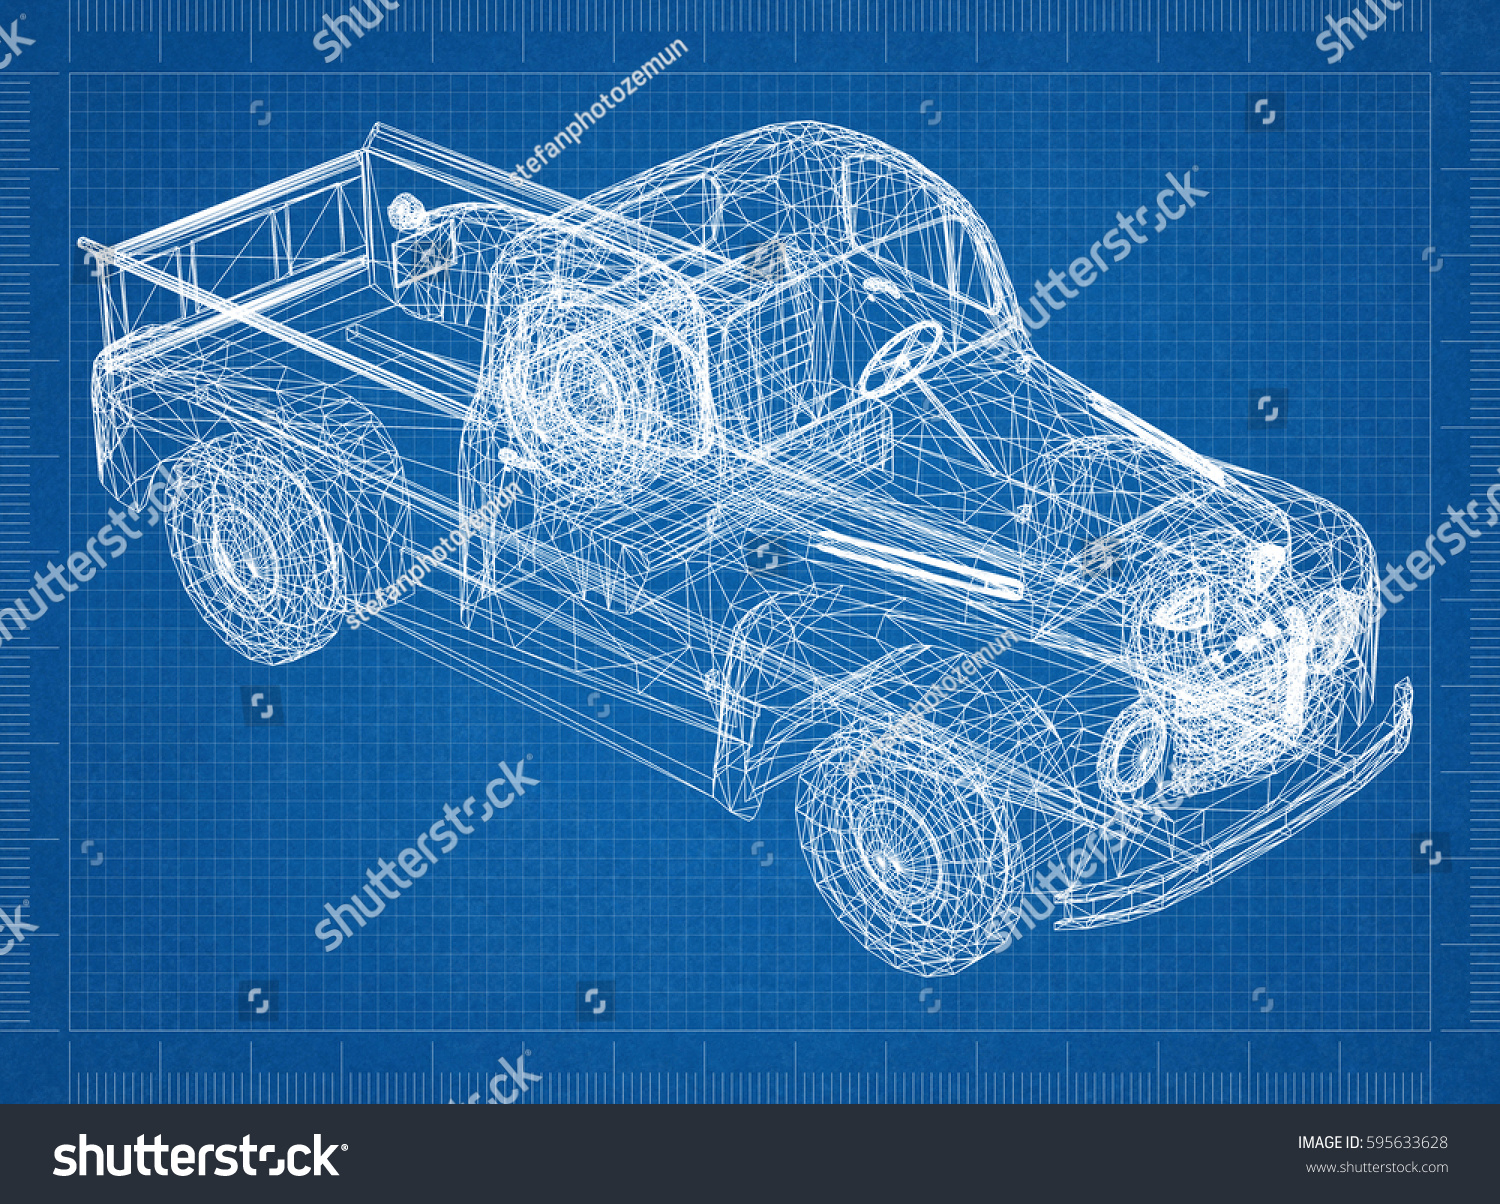 Car blueprint 3d perspective stock illustration 595633628 car blueprint 3d perspective malvernweather Images